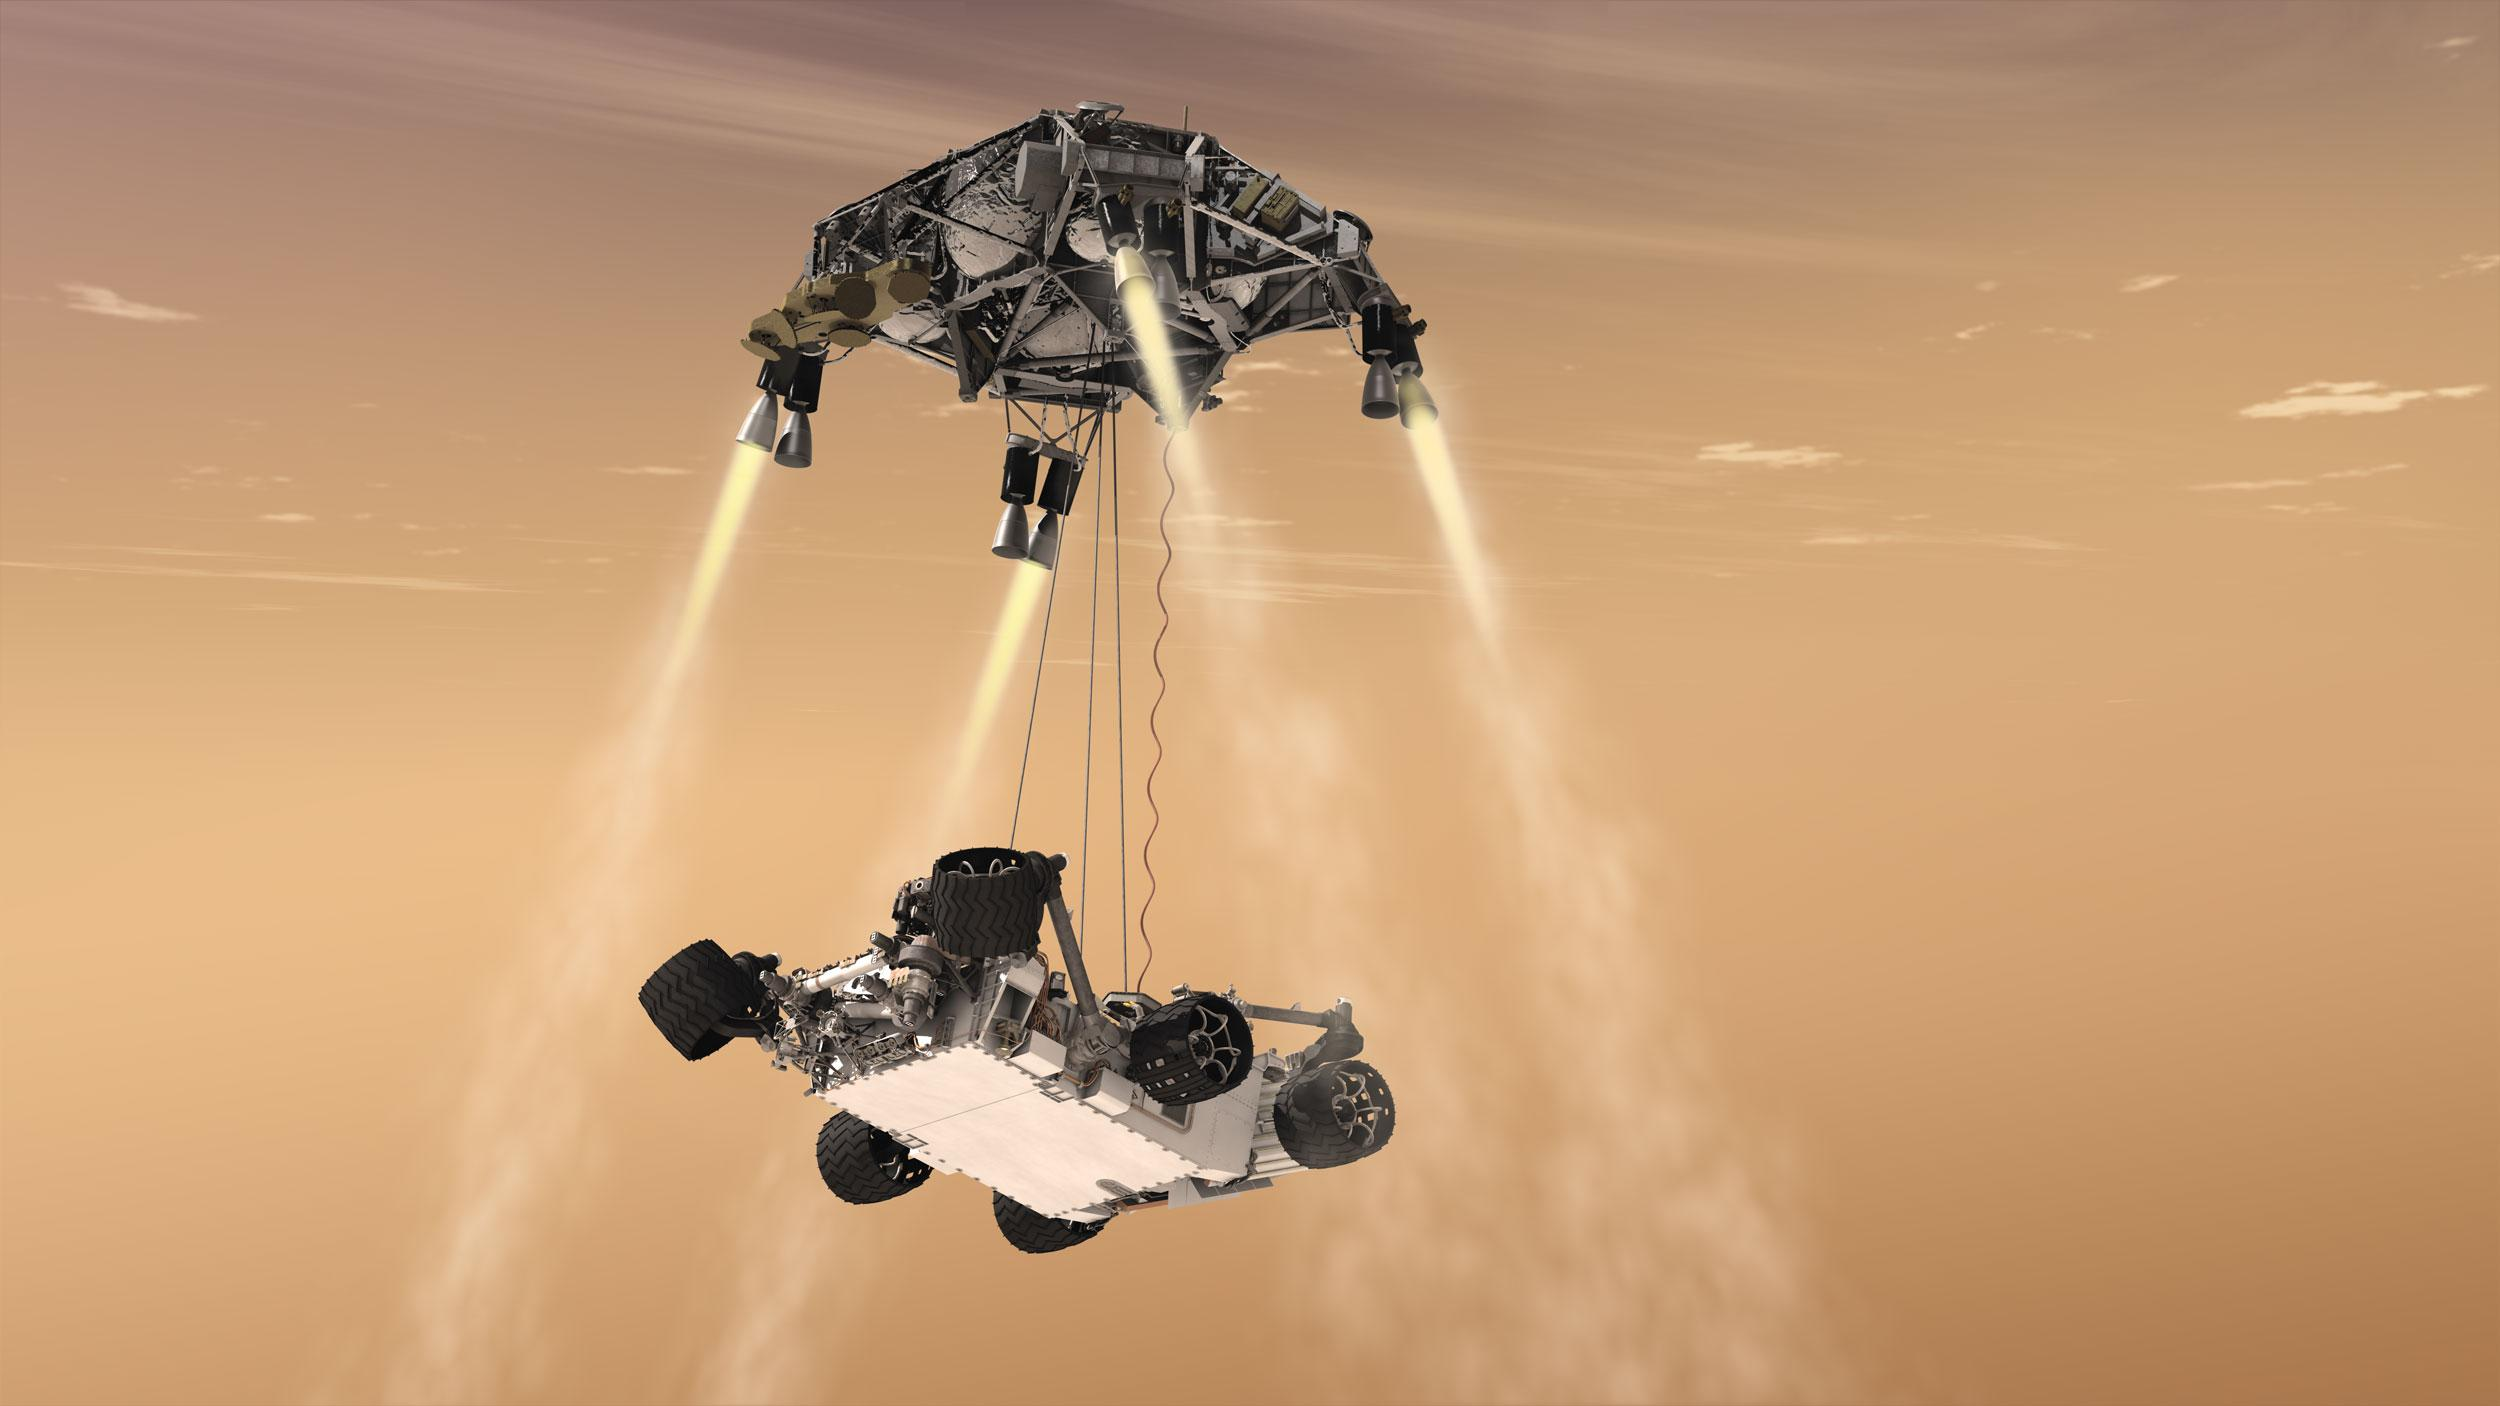 Sky Crane in aerial ballet mode during the descent of NASA's Curiosity rover to the Martian surface.